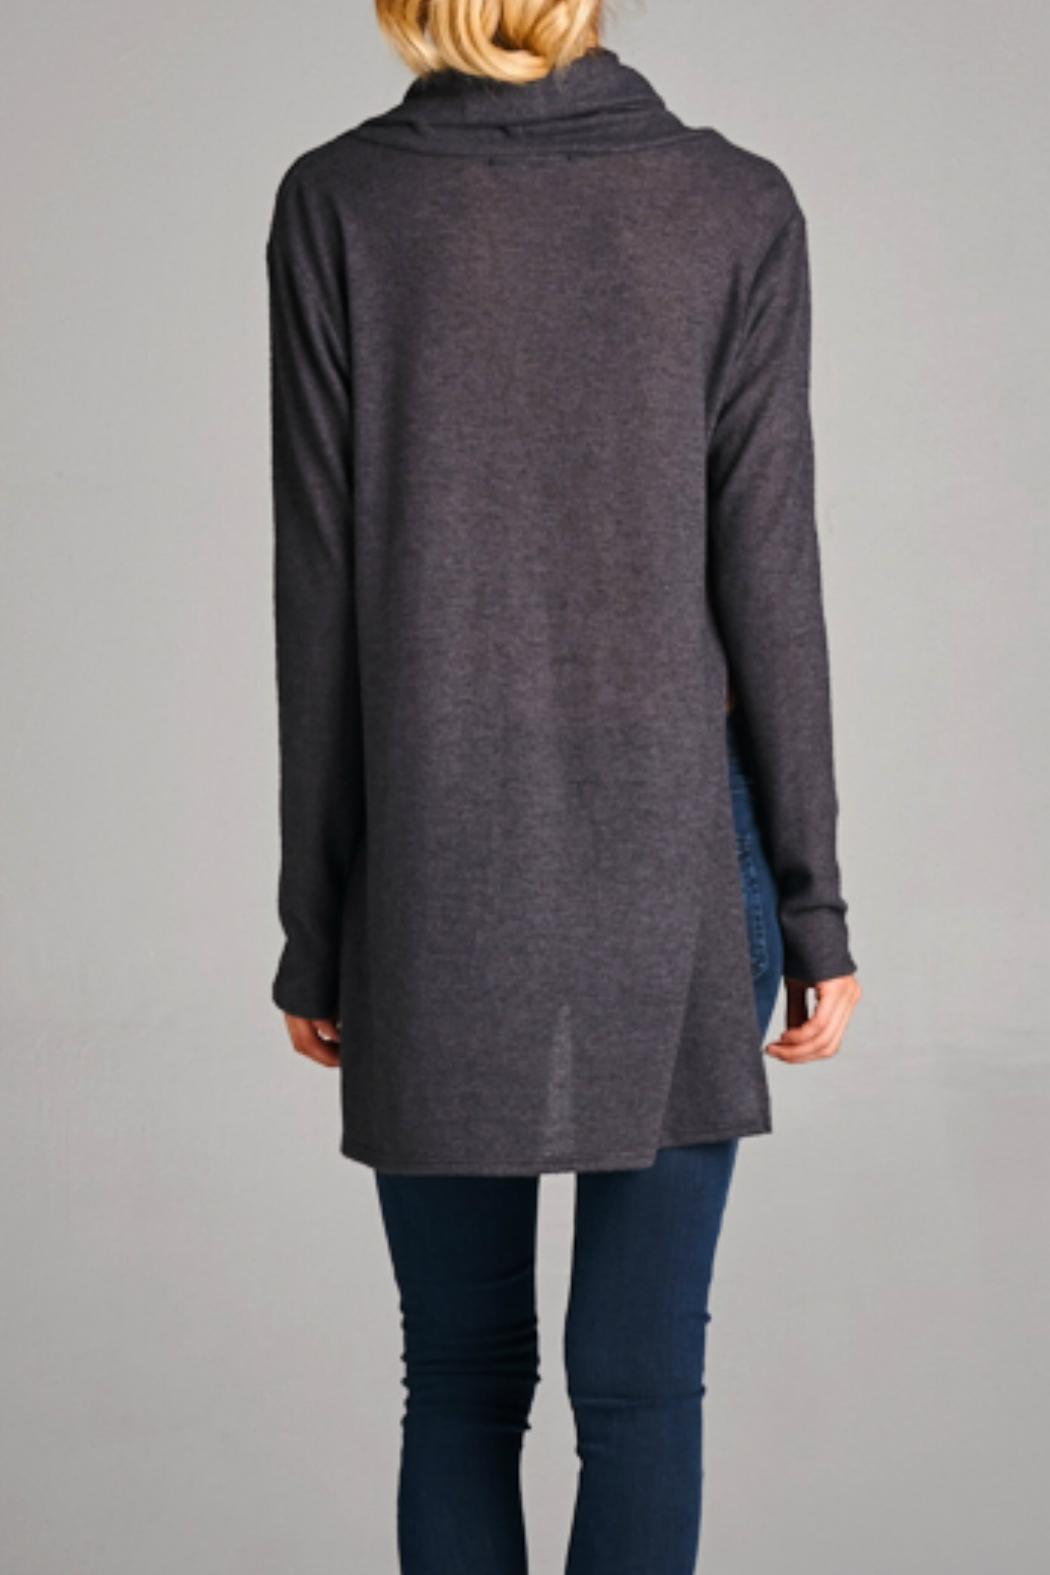 Cherish Cowl Neck Sweater from Kansas by Lilly and Marie — Shoptiques